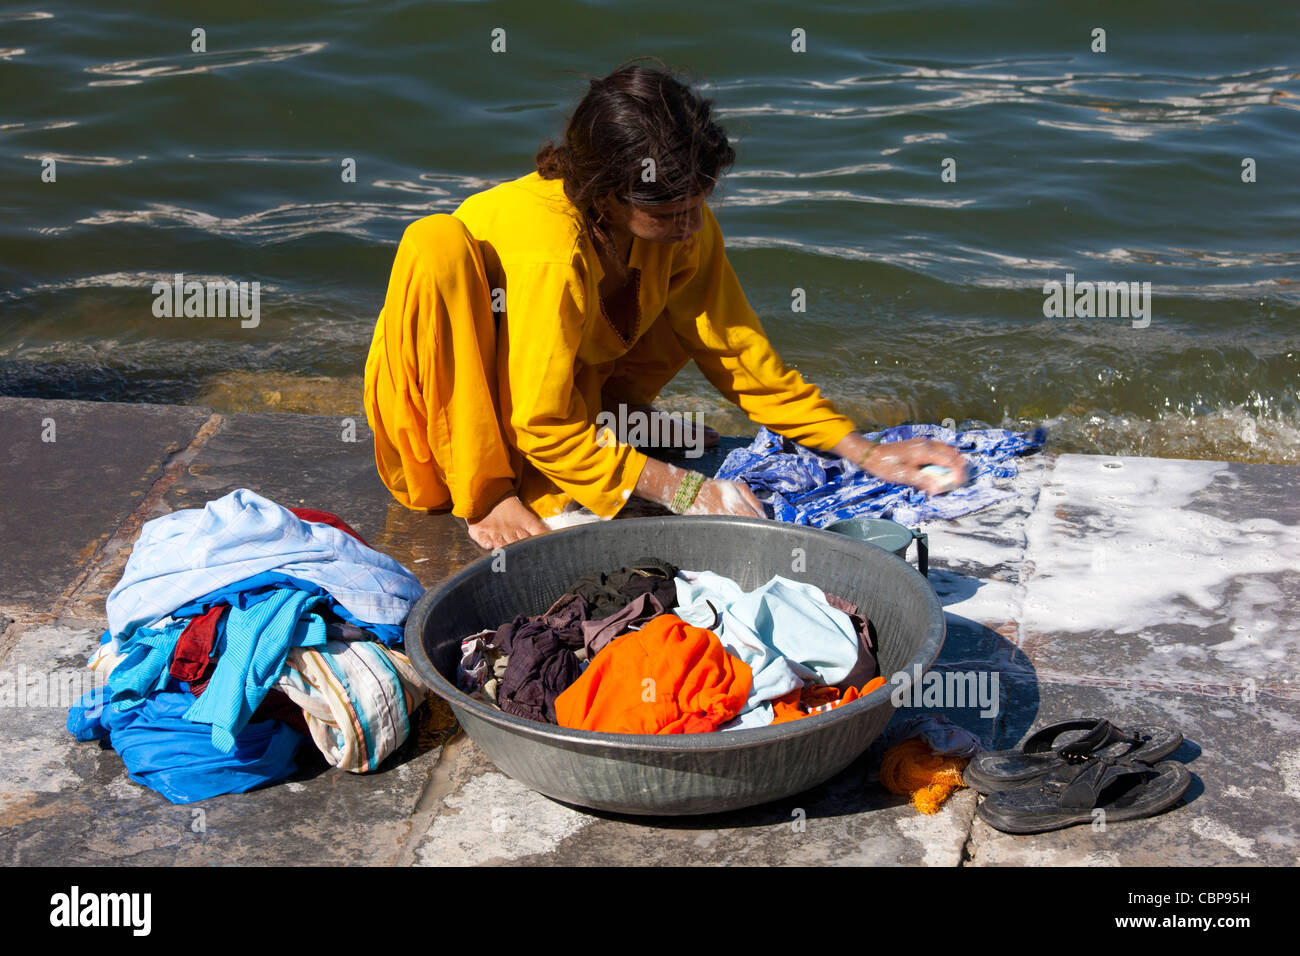 Young Indian girl squatting down to do her laundry in the waters of Lake Pichola, Udaipur, Rajasthan, Western India - Stock Image